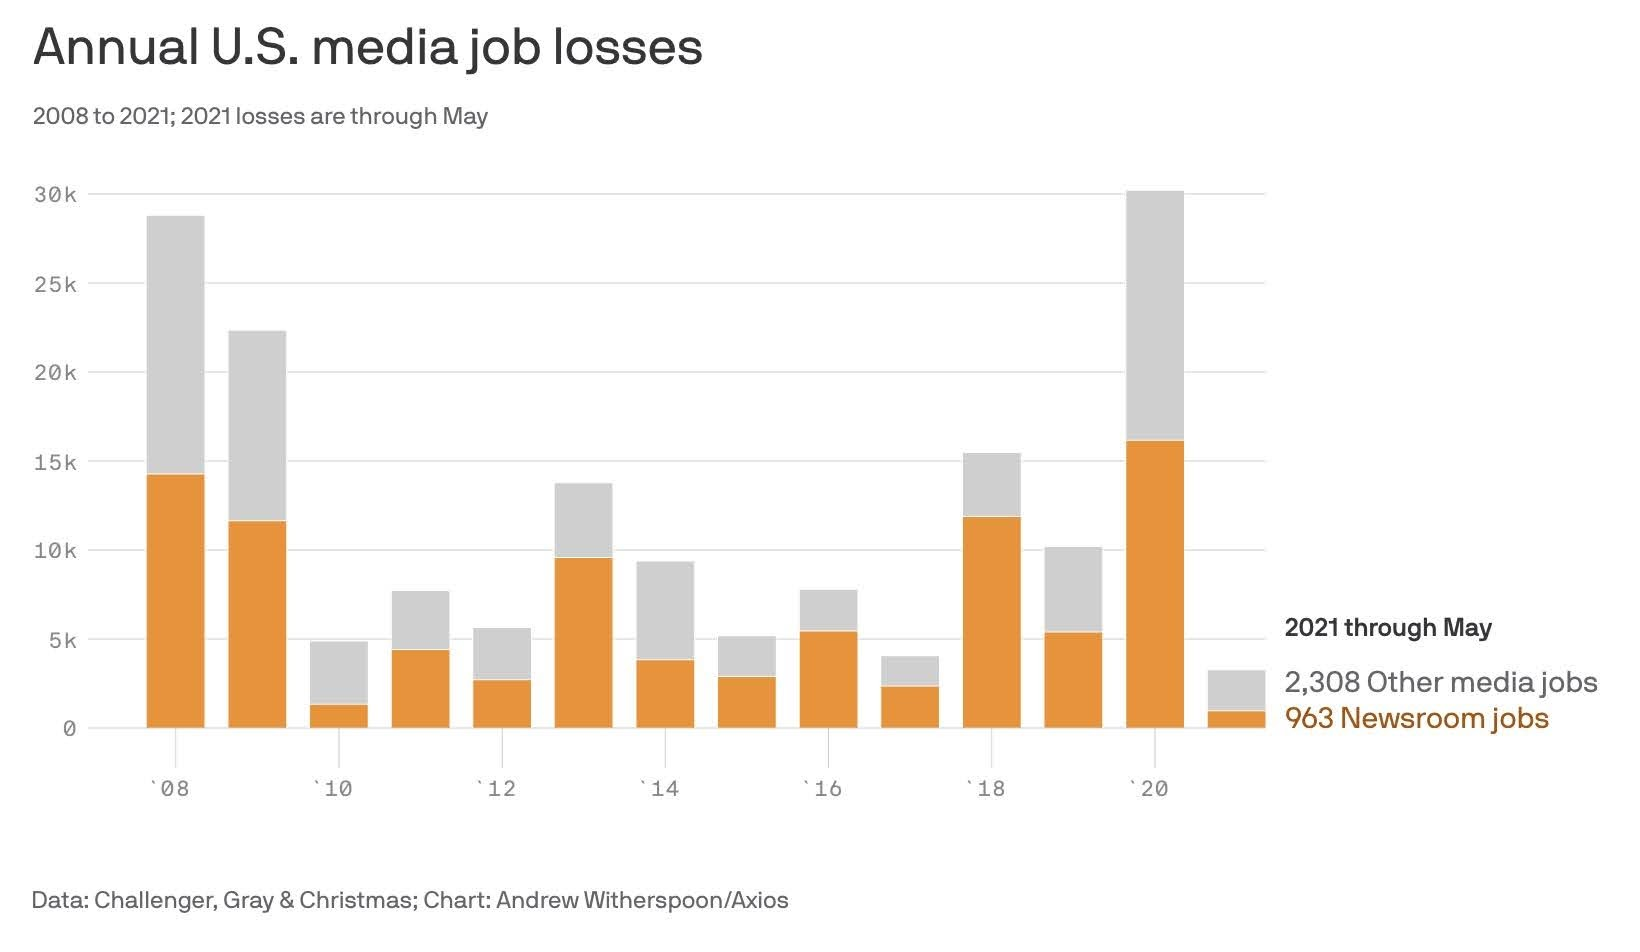 Annual U.S. media job losses. 2008 to 2021; 2021 losses are through May. Data: Challenger, Gray & Christmas; Chart: Andrew Witherspoon/Axios